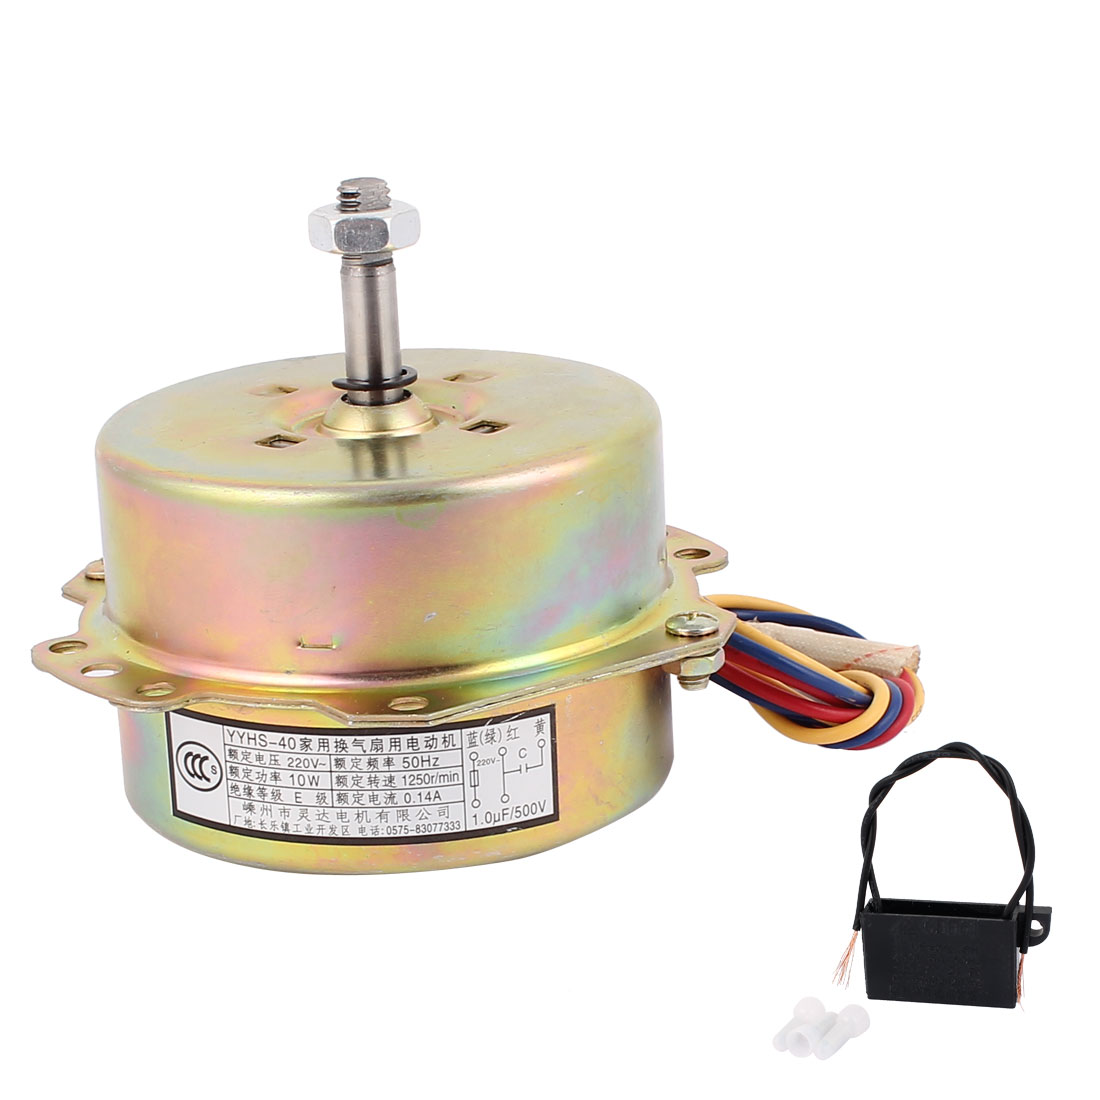 AC 220V 0.14A 10W 1250RPM 8mmx30mm Home Electric Ventilator Fan Motor